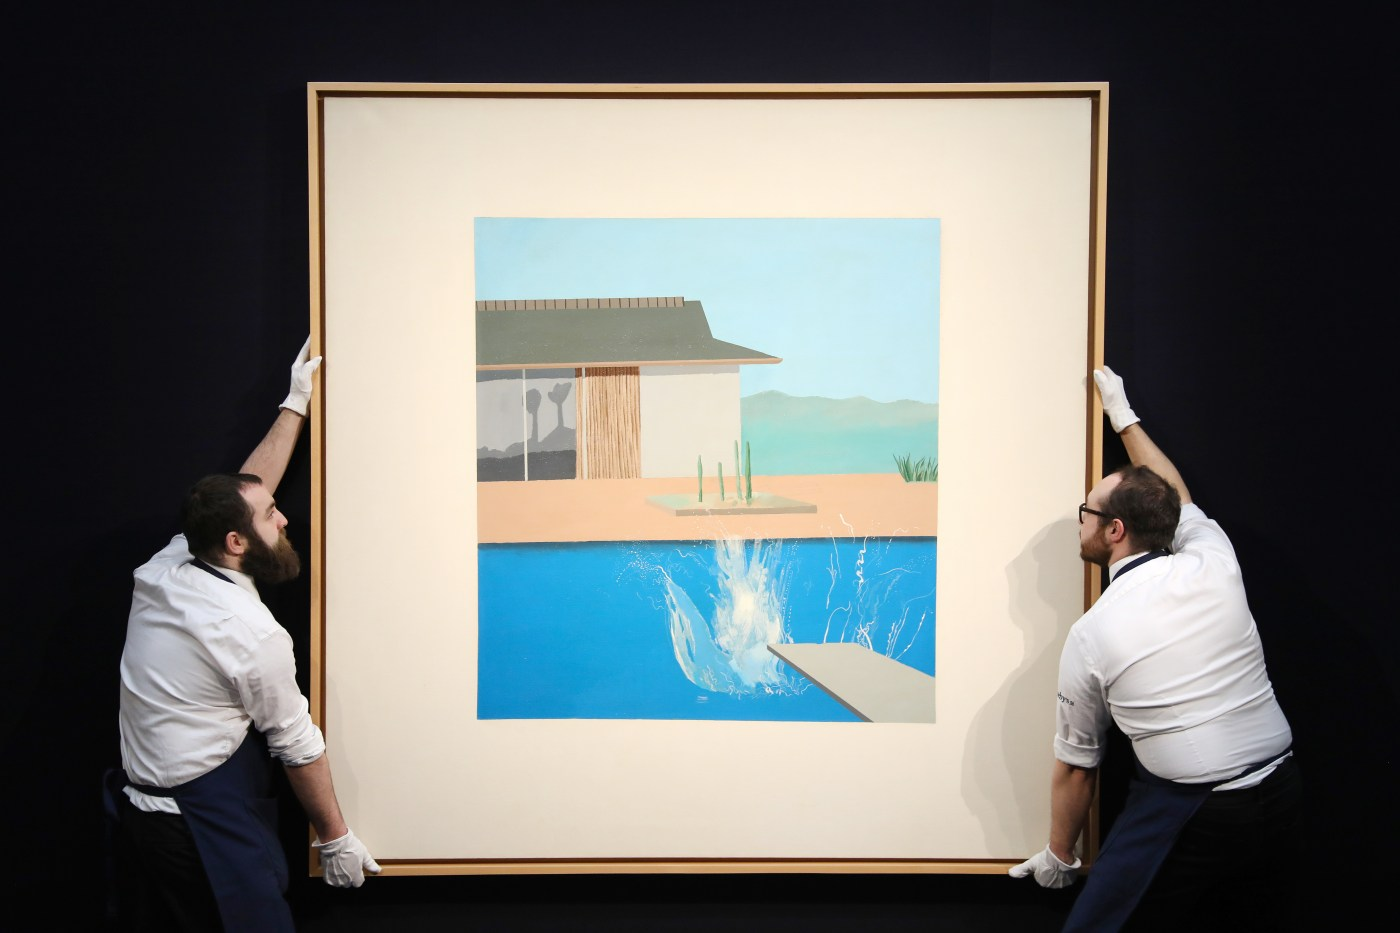 Courtesy of Sotheby's Contemporary Art Evening Auction | 11 February 2020 Lot 16 David Hockney The Splash 1966 72 by David Hockney 72in. Est. £20 - 30 million